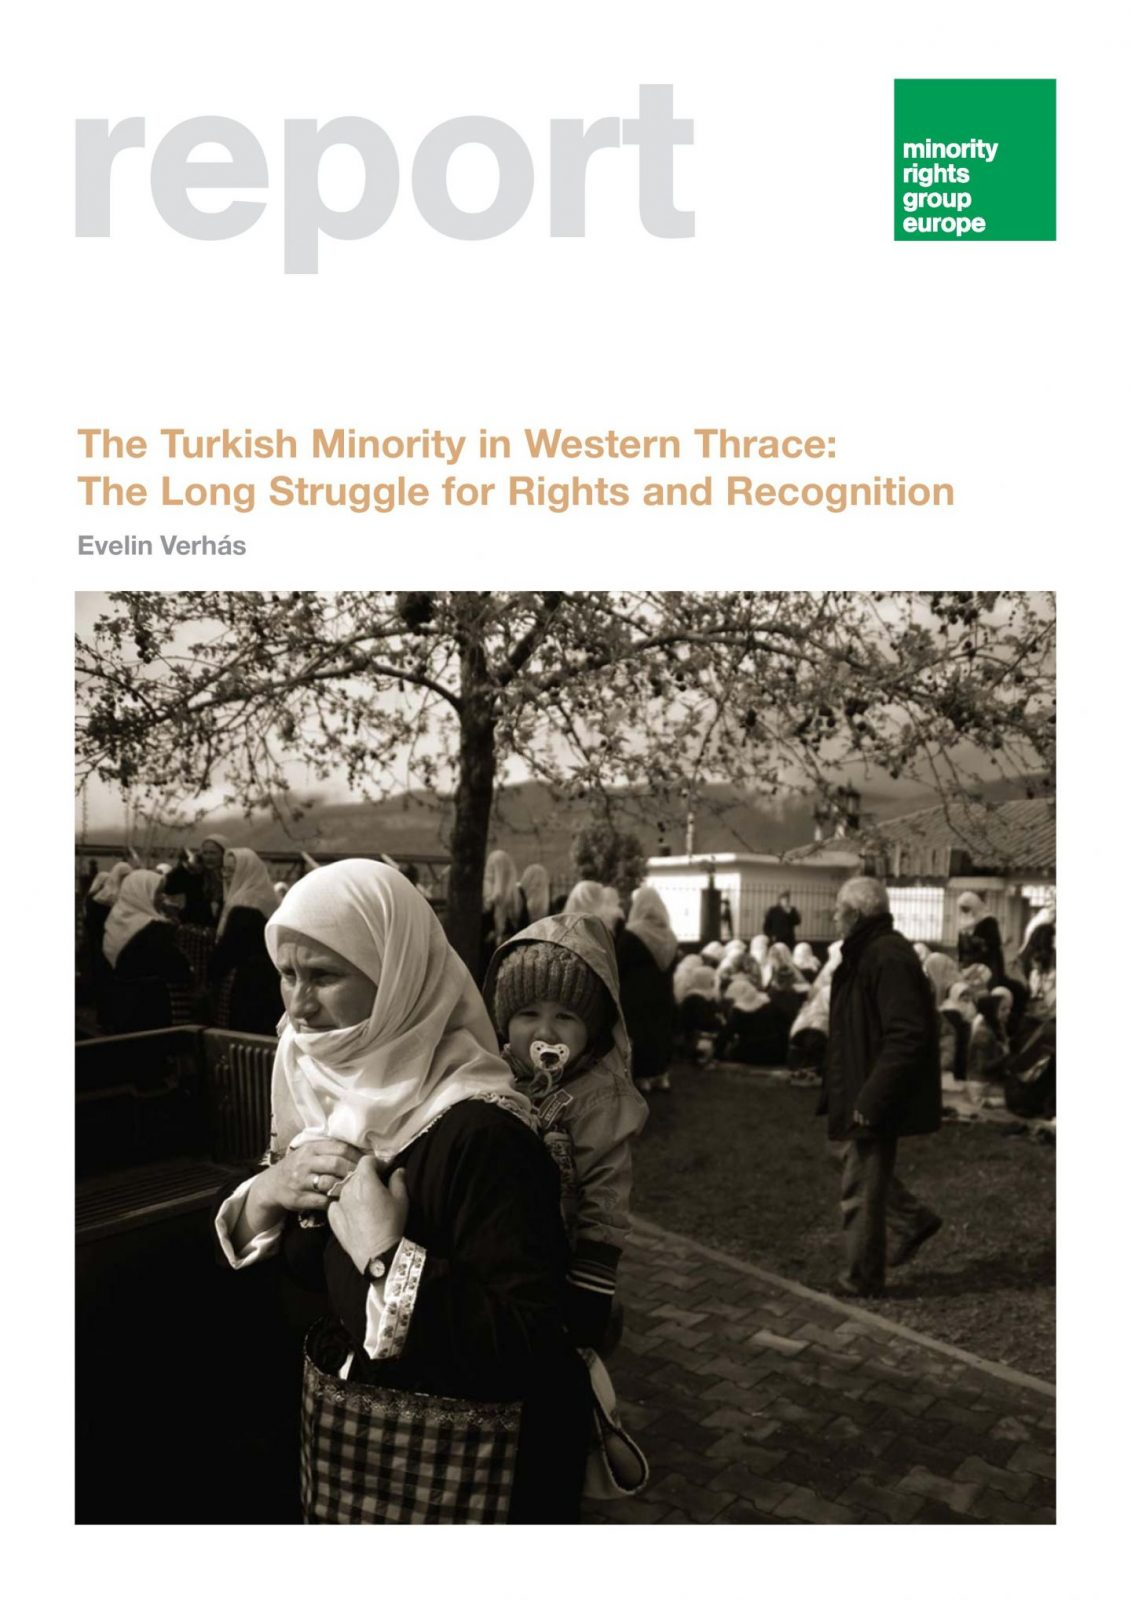 The Turkish minority in Greece must be recognized and free to enjoy their rights, says new report